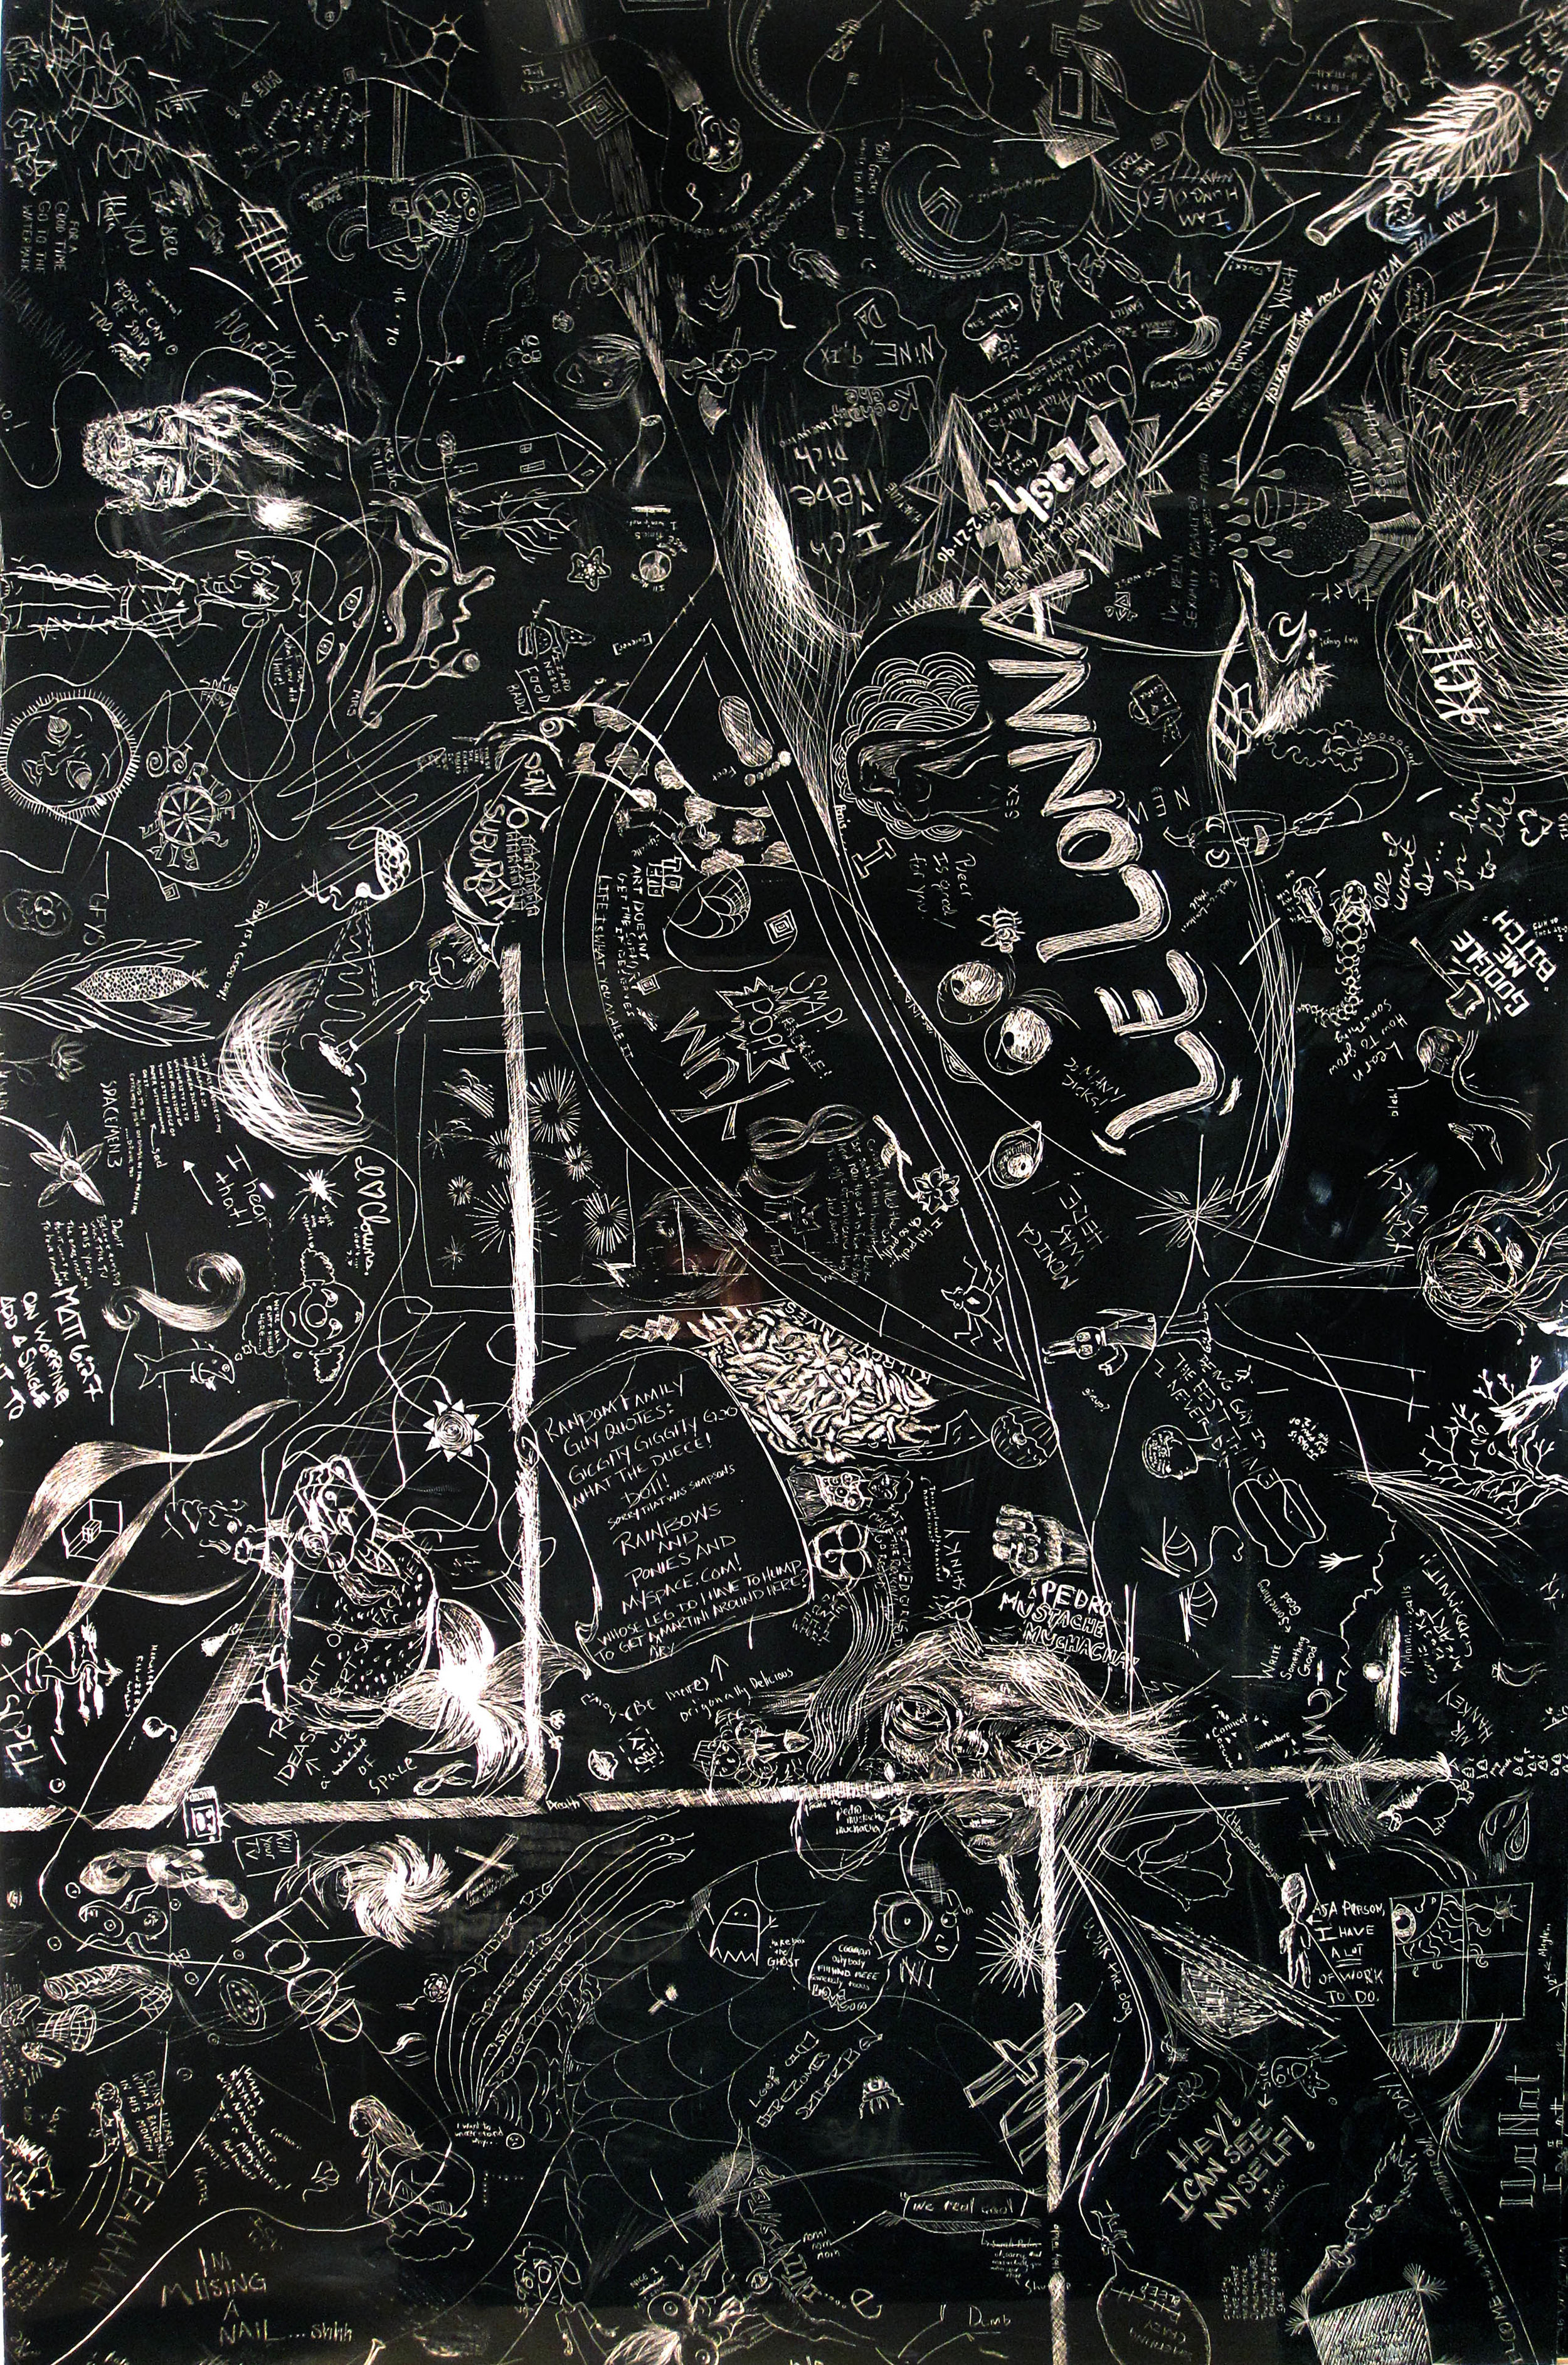 LeLonna, Crowd sourced collaborative drawing at NIU School of Art and Design, Incised aluminum with baked enamel finish, 60 X 48 inches, 2010